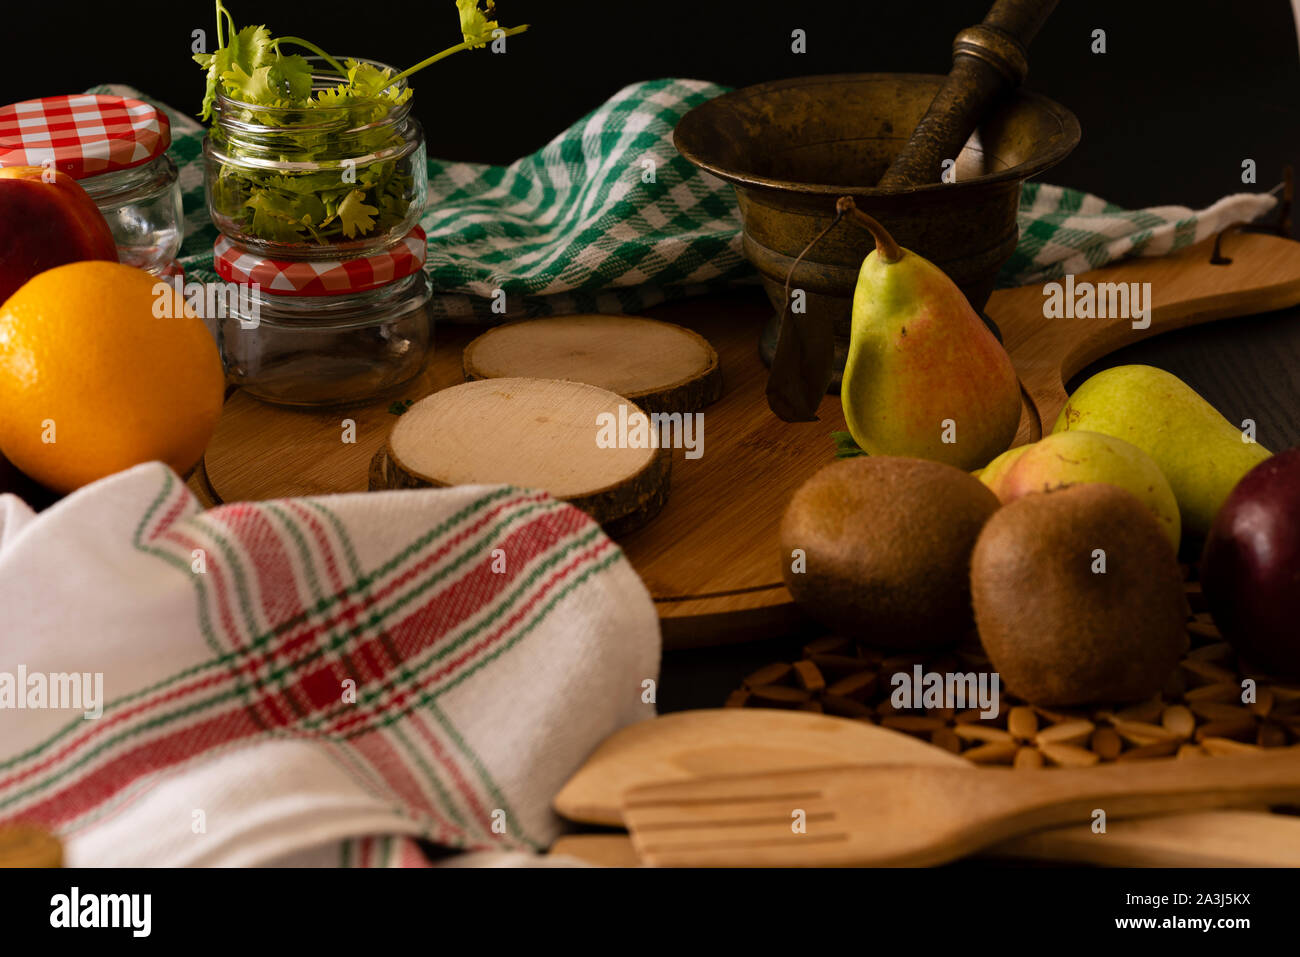 Fruits and vegetables organics Stock Photo